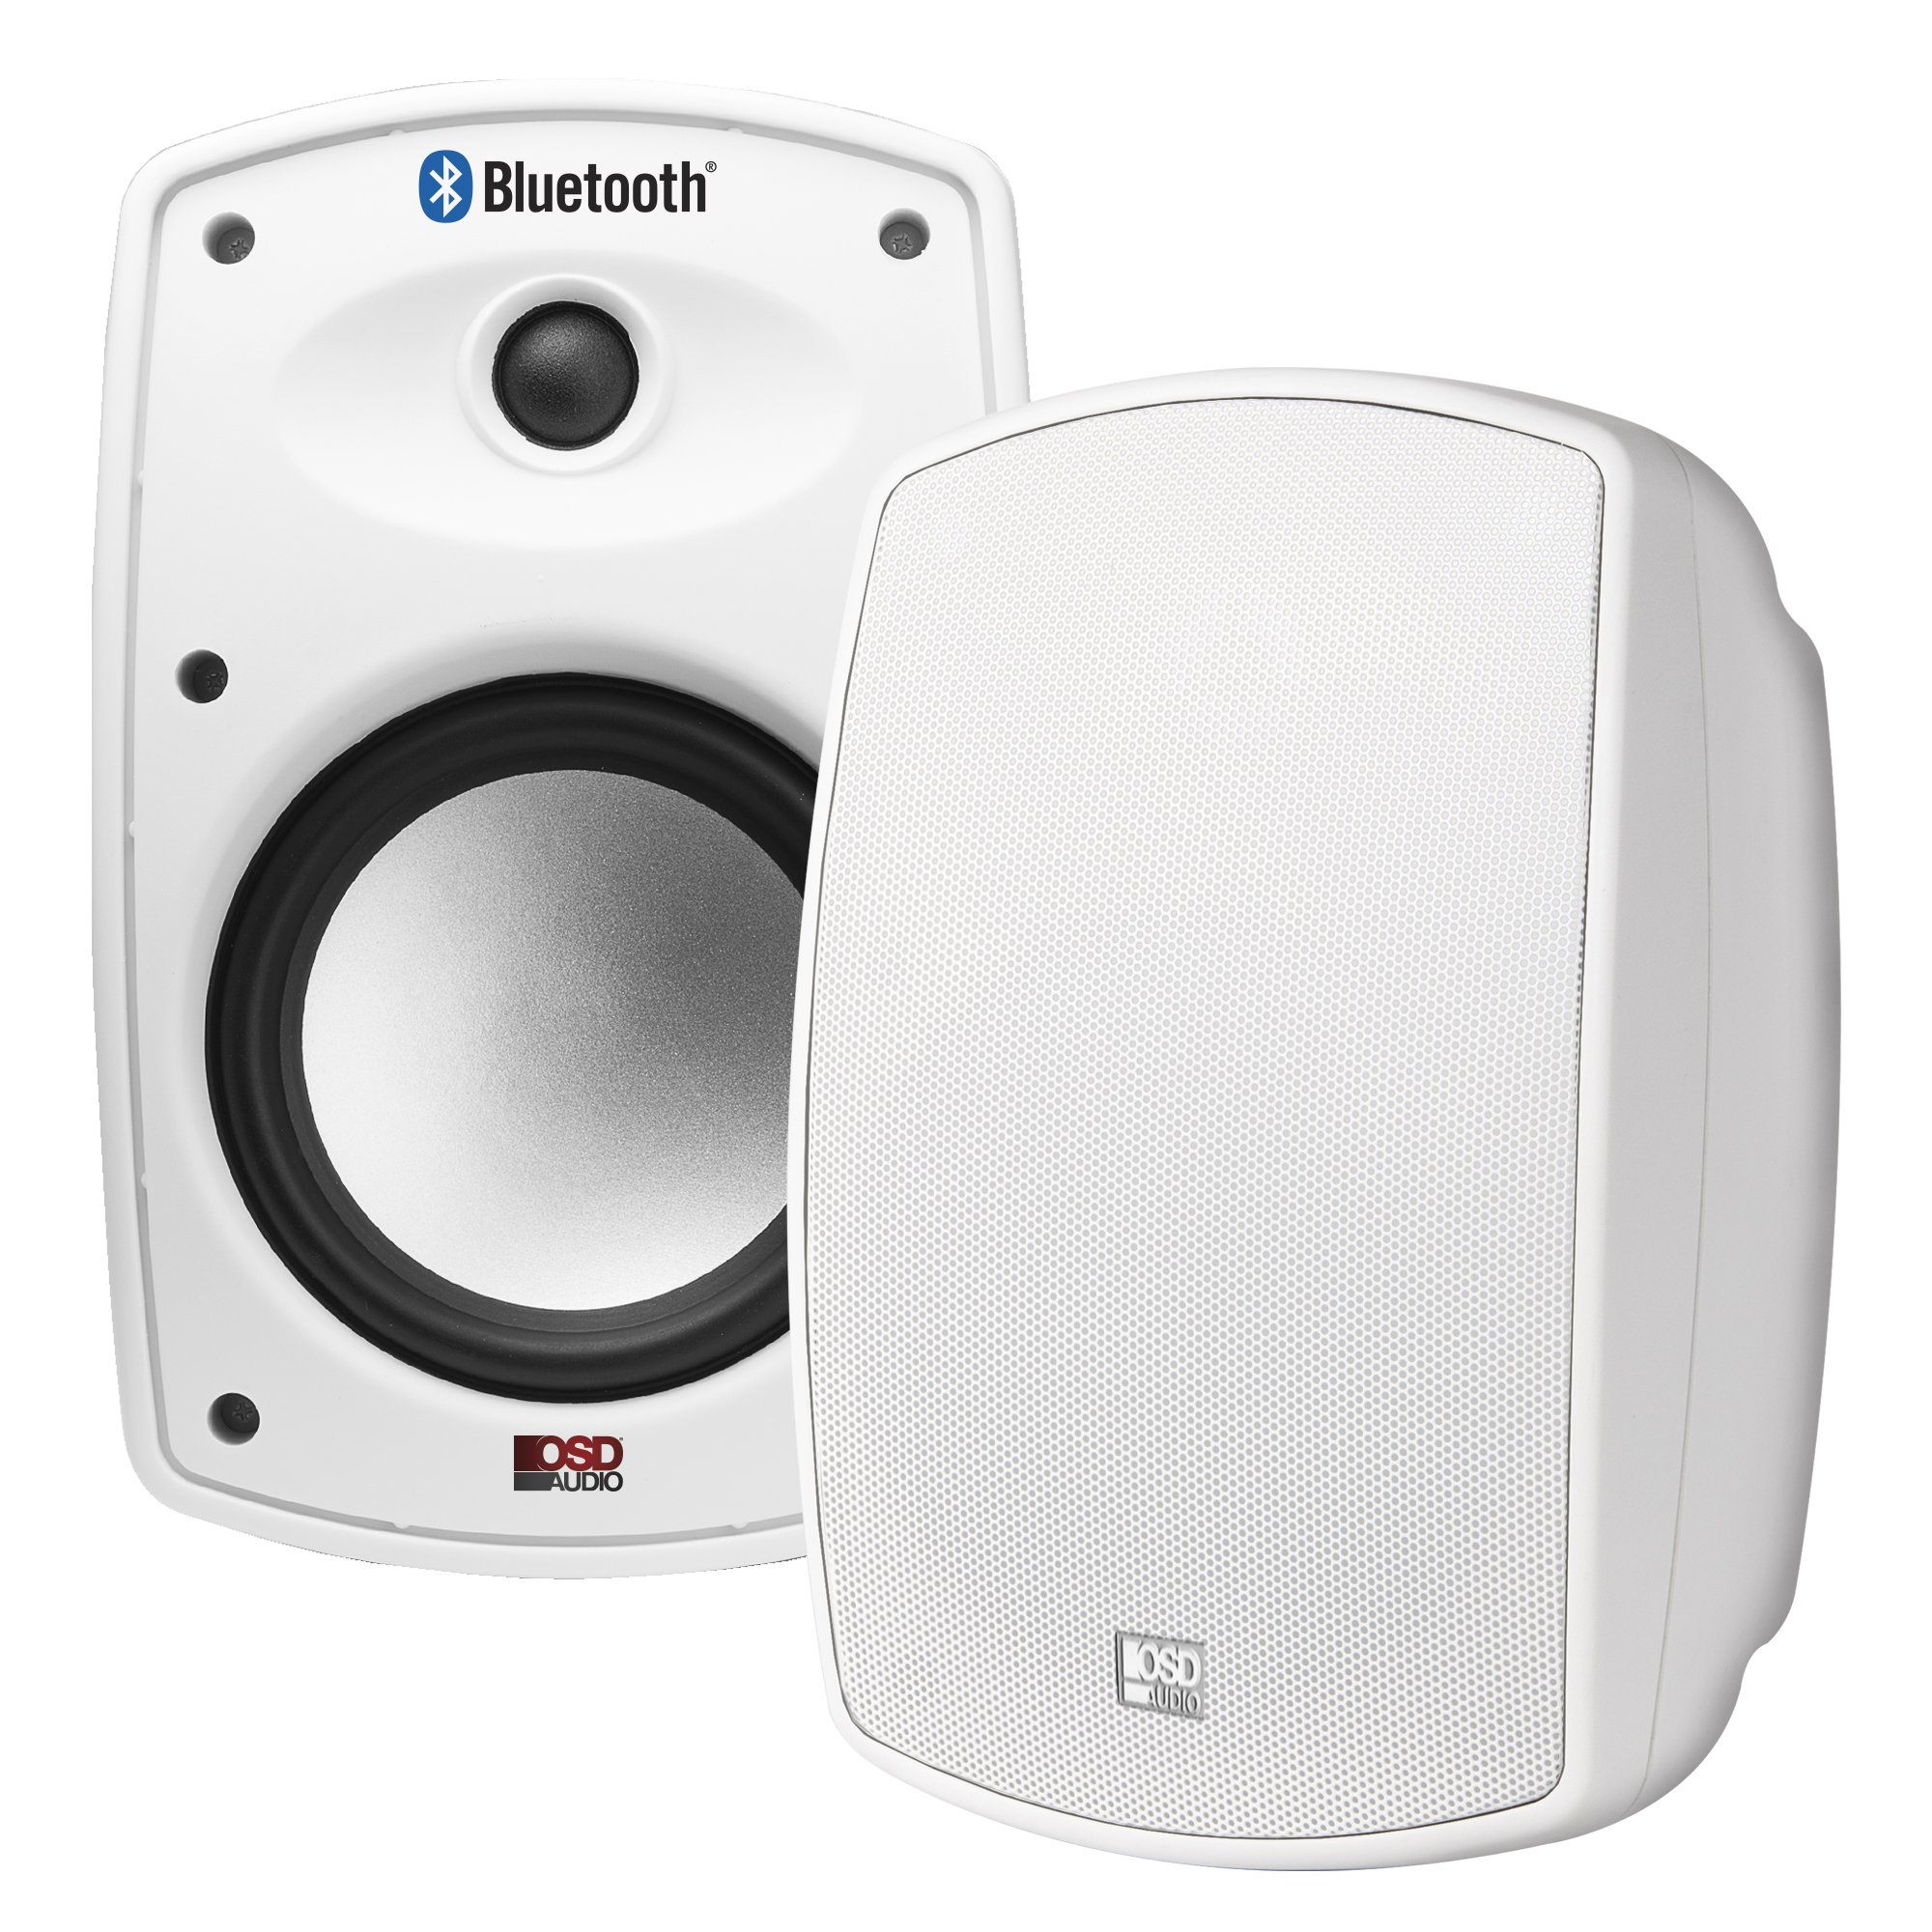 BTP650 Bluetooth High Definition 2-Way 6.5-Inch Water-Proof Power Supply IP67 Composite Resin Low Resonator Cabinet Outdoor Weather Resistant Patio Speaker - OSD Audio (Pair, White)